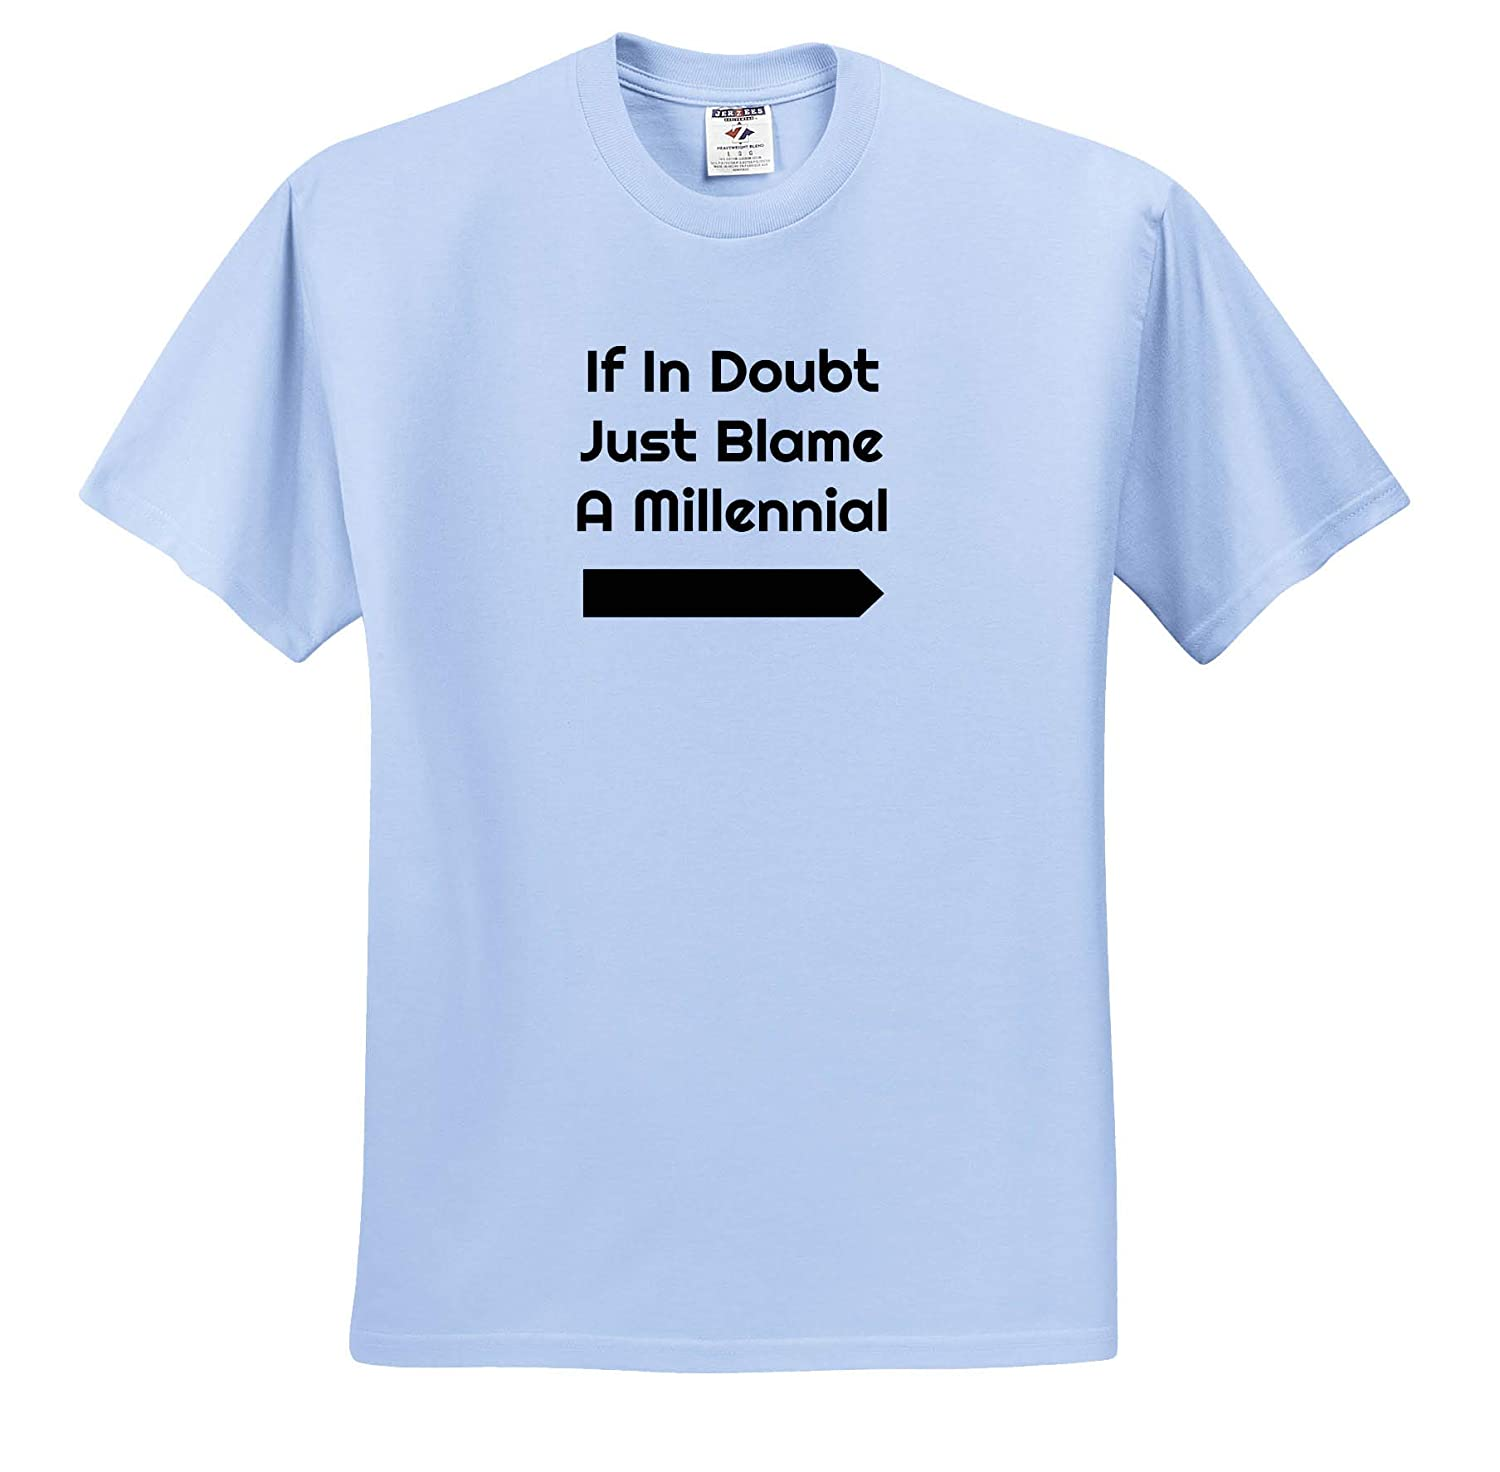 Adult T-Shirt XL ts/_312301 Image of If in Doubt Blame A Millennial 3dRose Carrie Merchant Quote